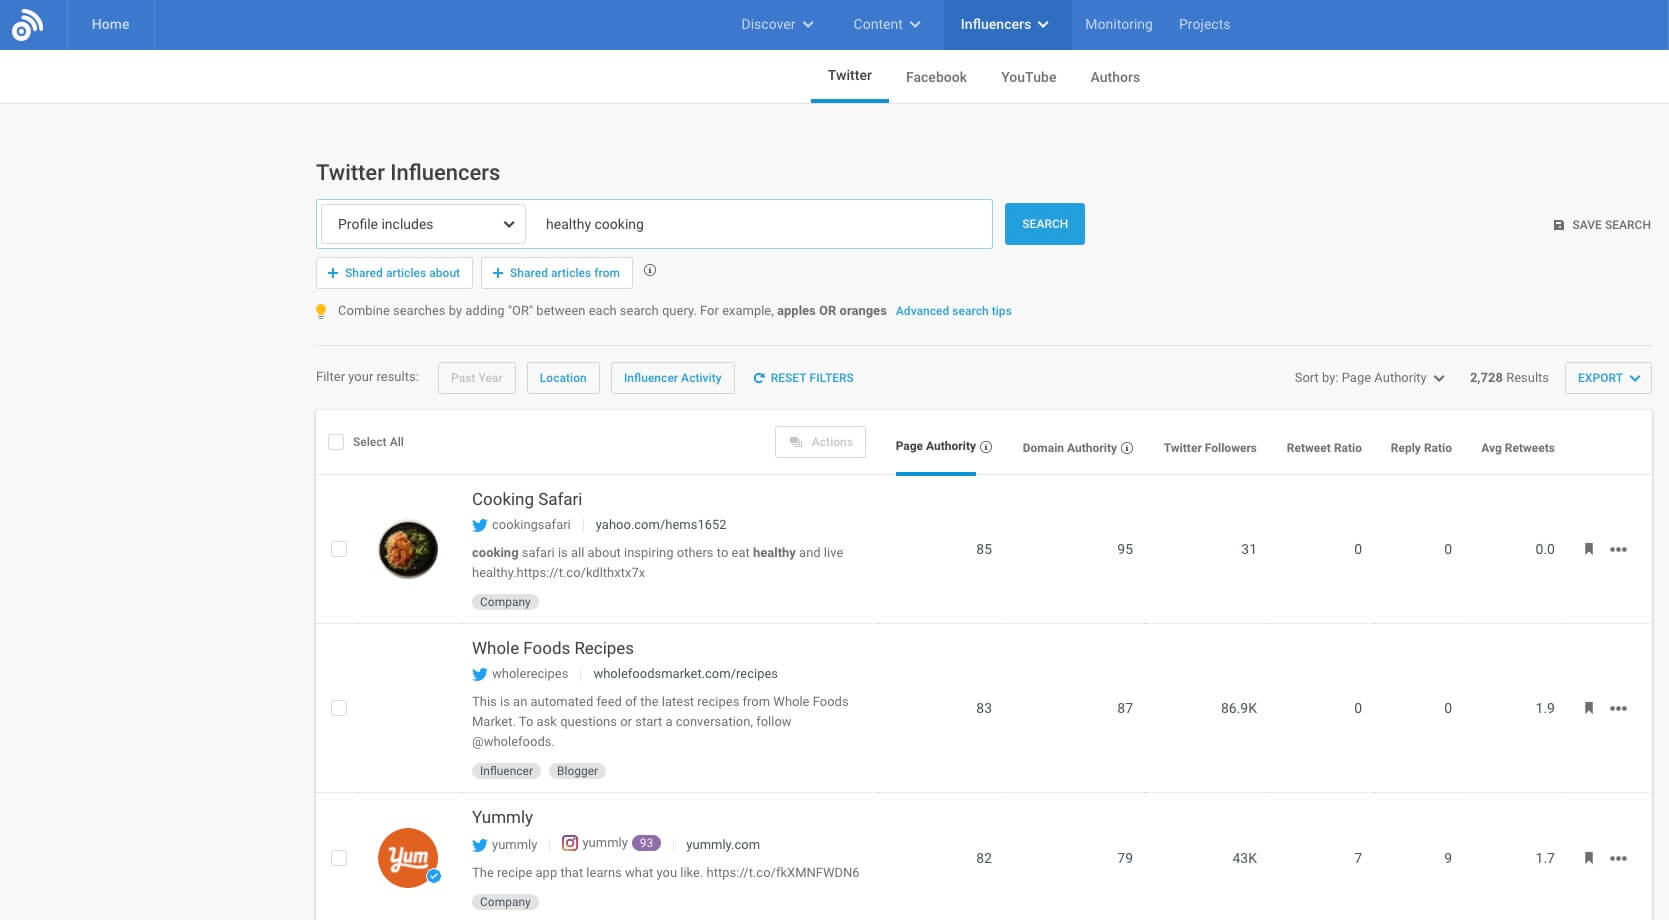 Buzzsumo Research on How to Find Your Target Audience for a Blog (Screenshot of Twitter Influencers)